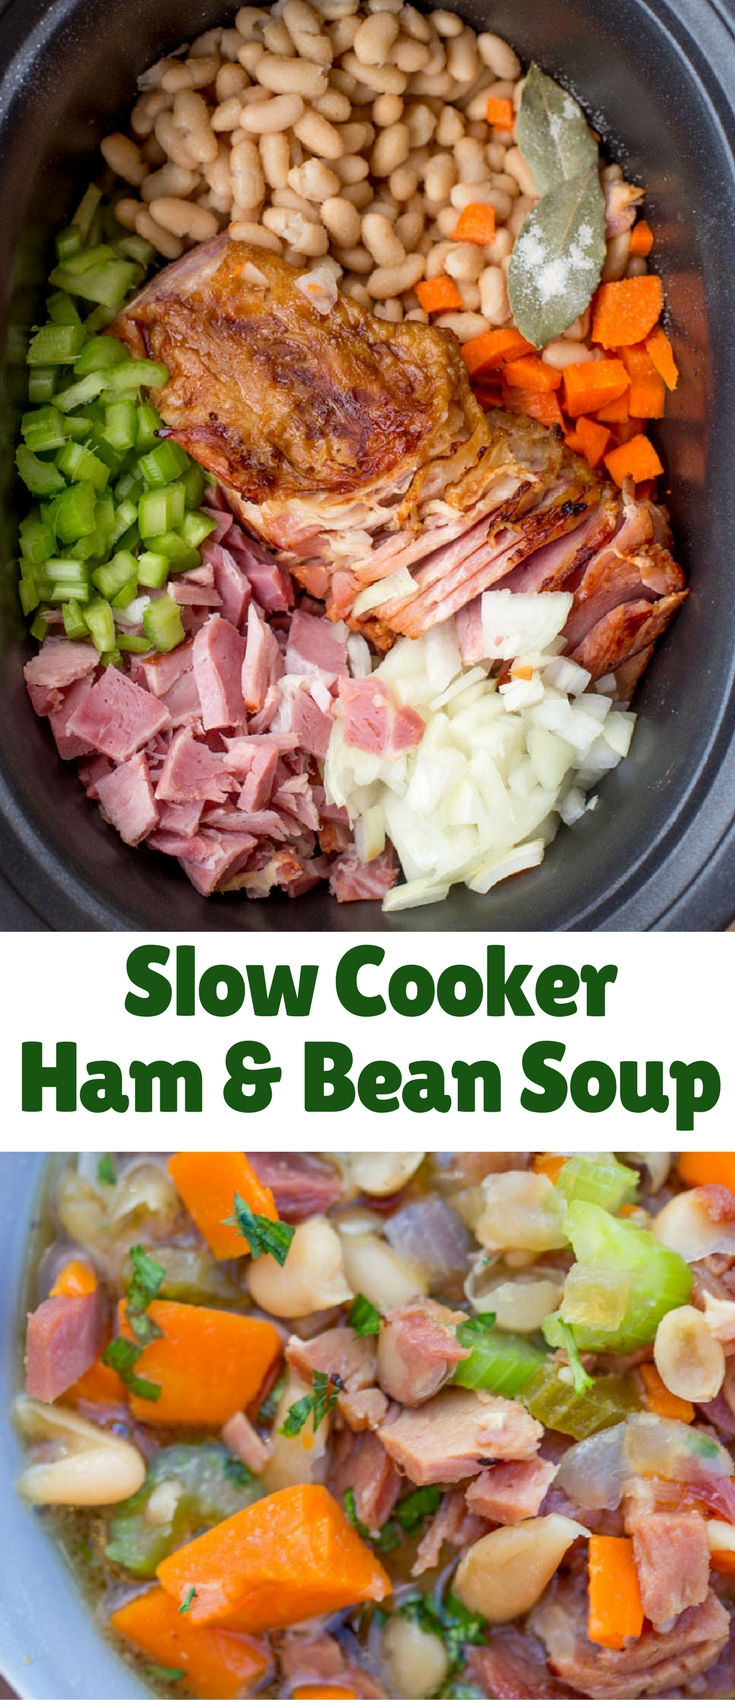 Slow Cooker Ham and Bean Soup is the perfect recipe after your holiday ham when you want a cozy warm soup to help you recover from holiday cooking!